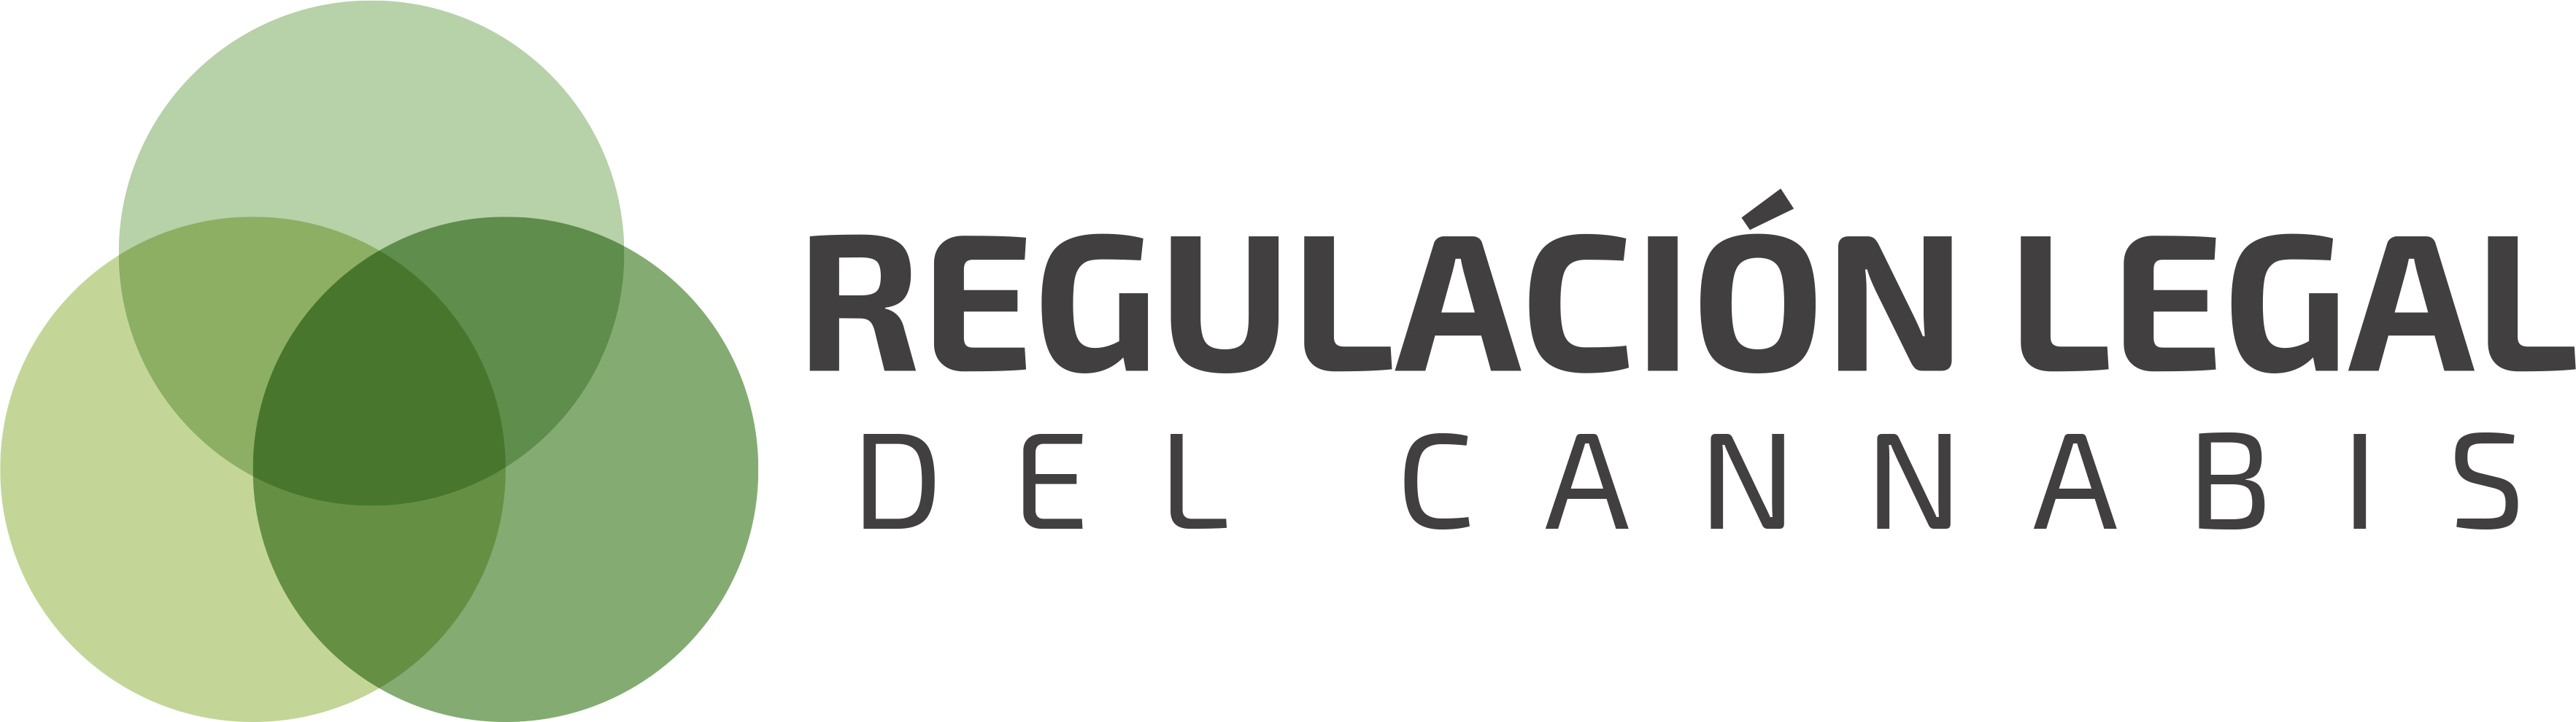 Regulación Legal